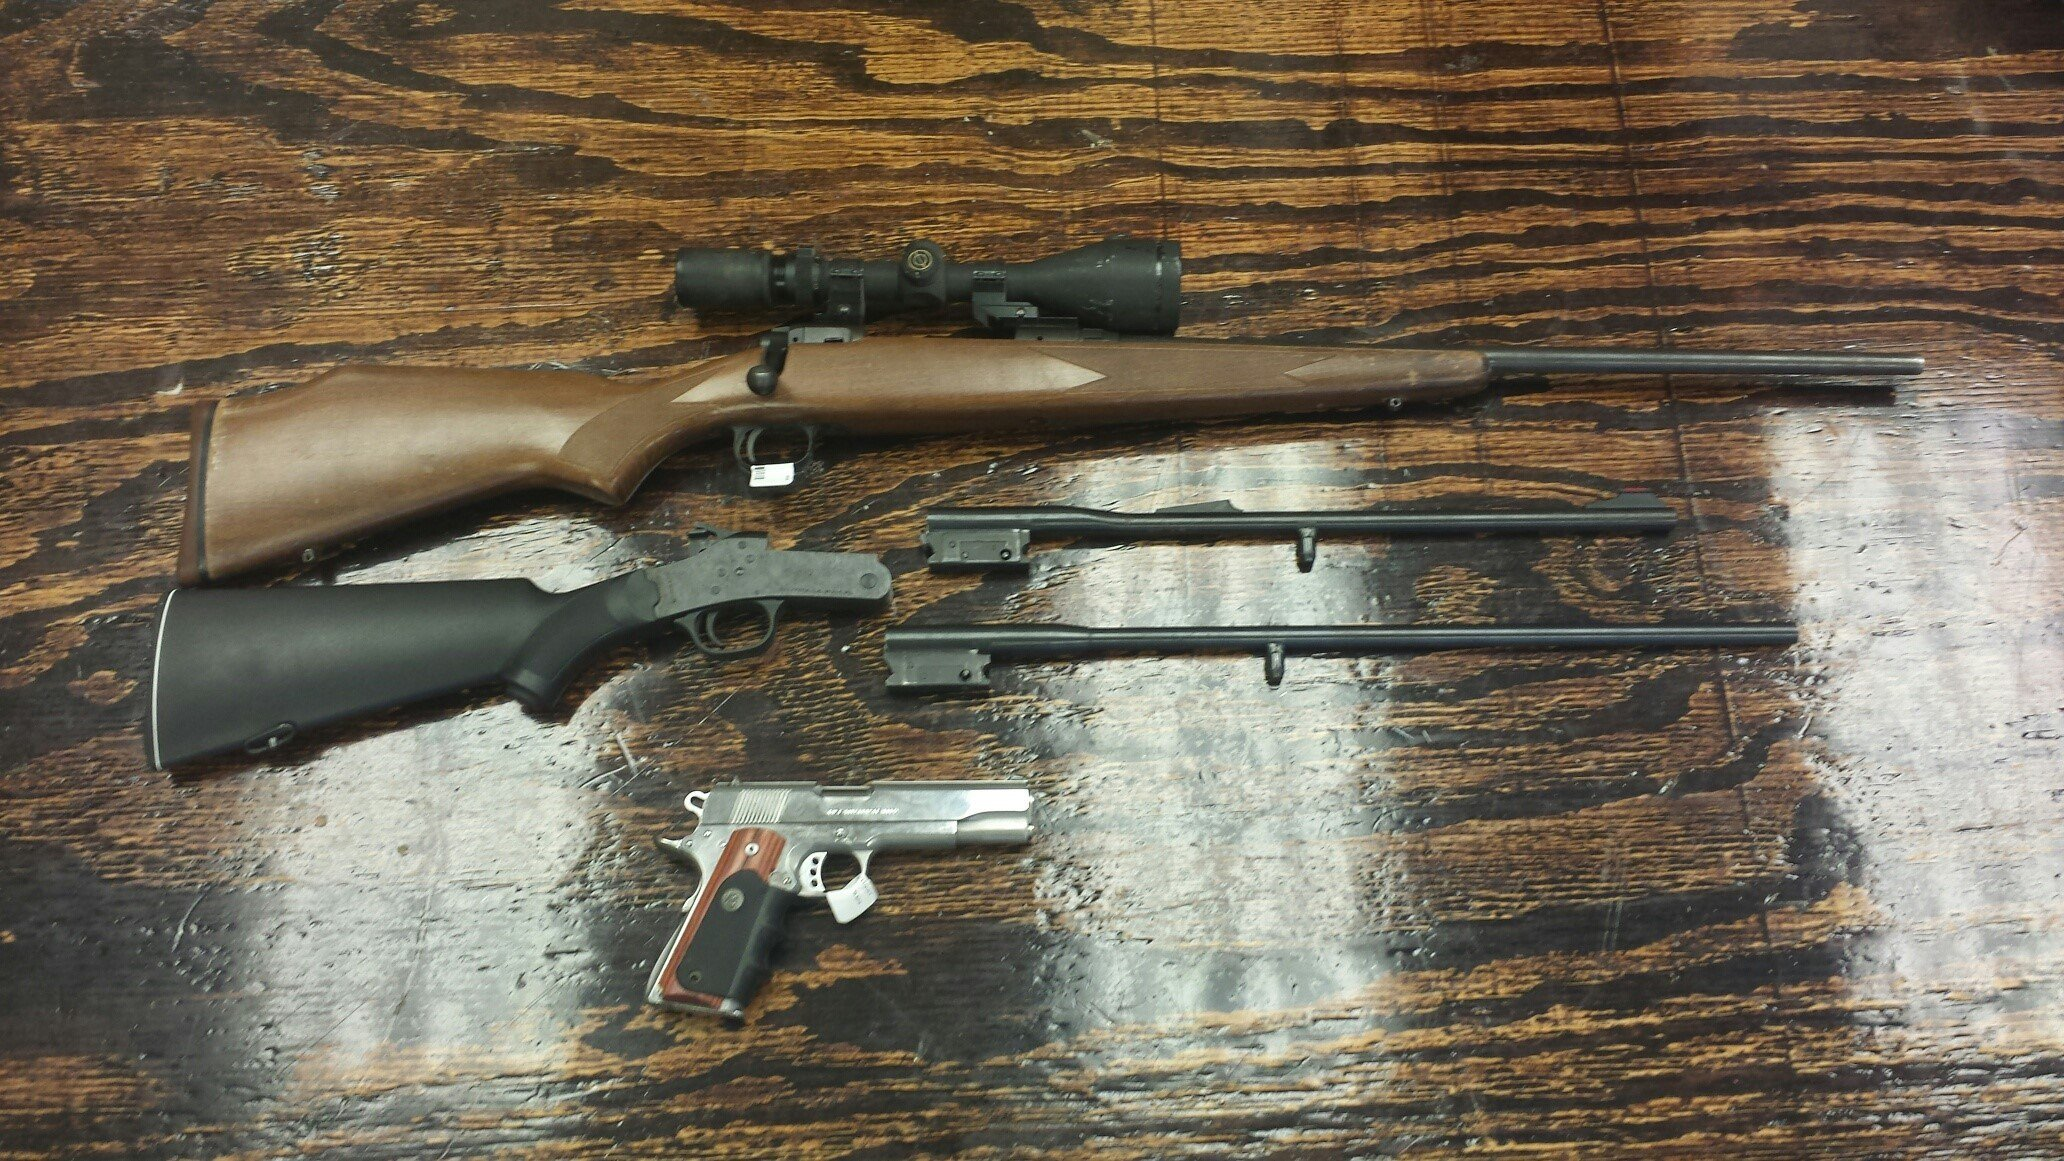 Stolen guns recovered from a pawn shop in Semmes (Mobile County Sheriff's Office)